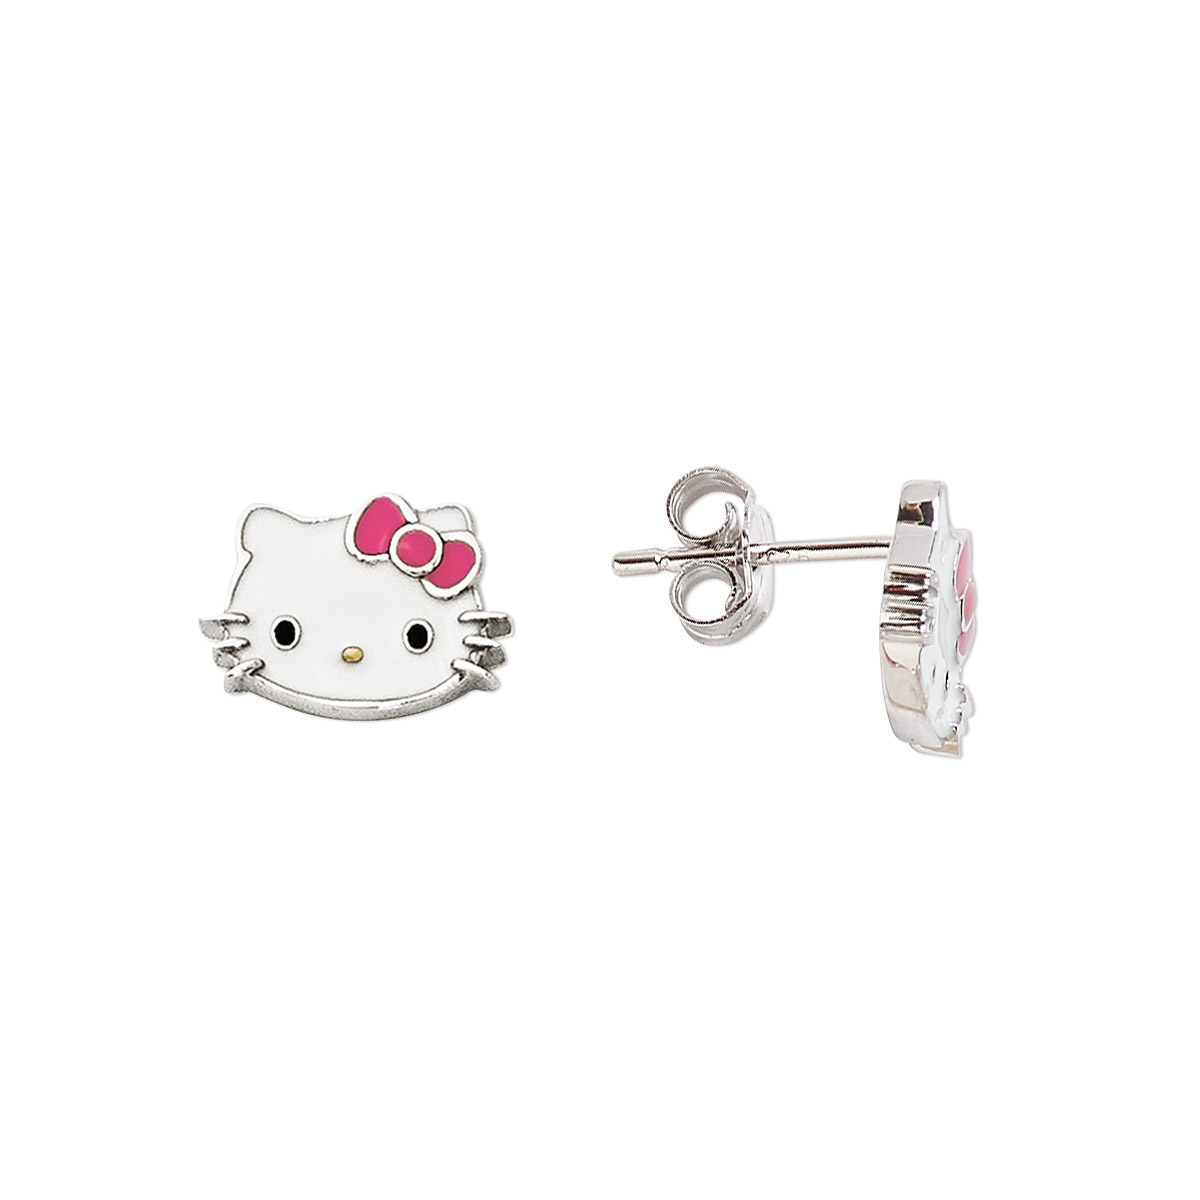 842f1845f Earring, Hello Kitty®, enamel and sterling silver, white / pink ...